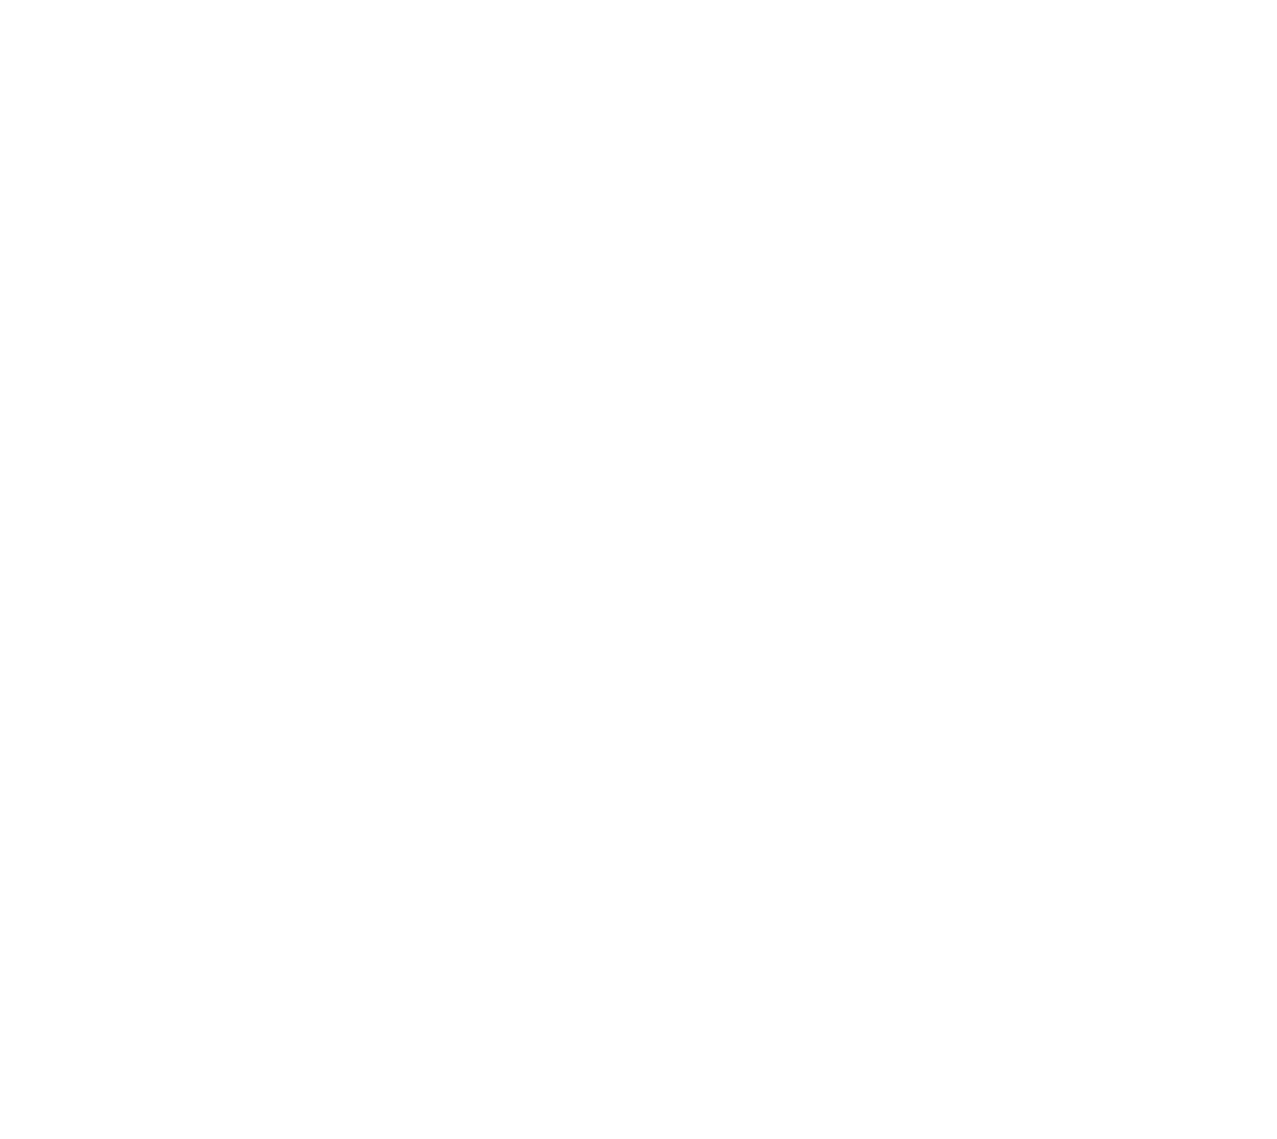 Granite Game Summit